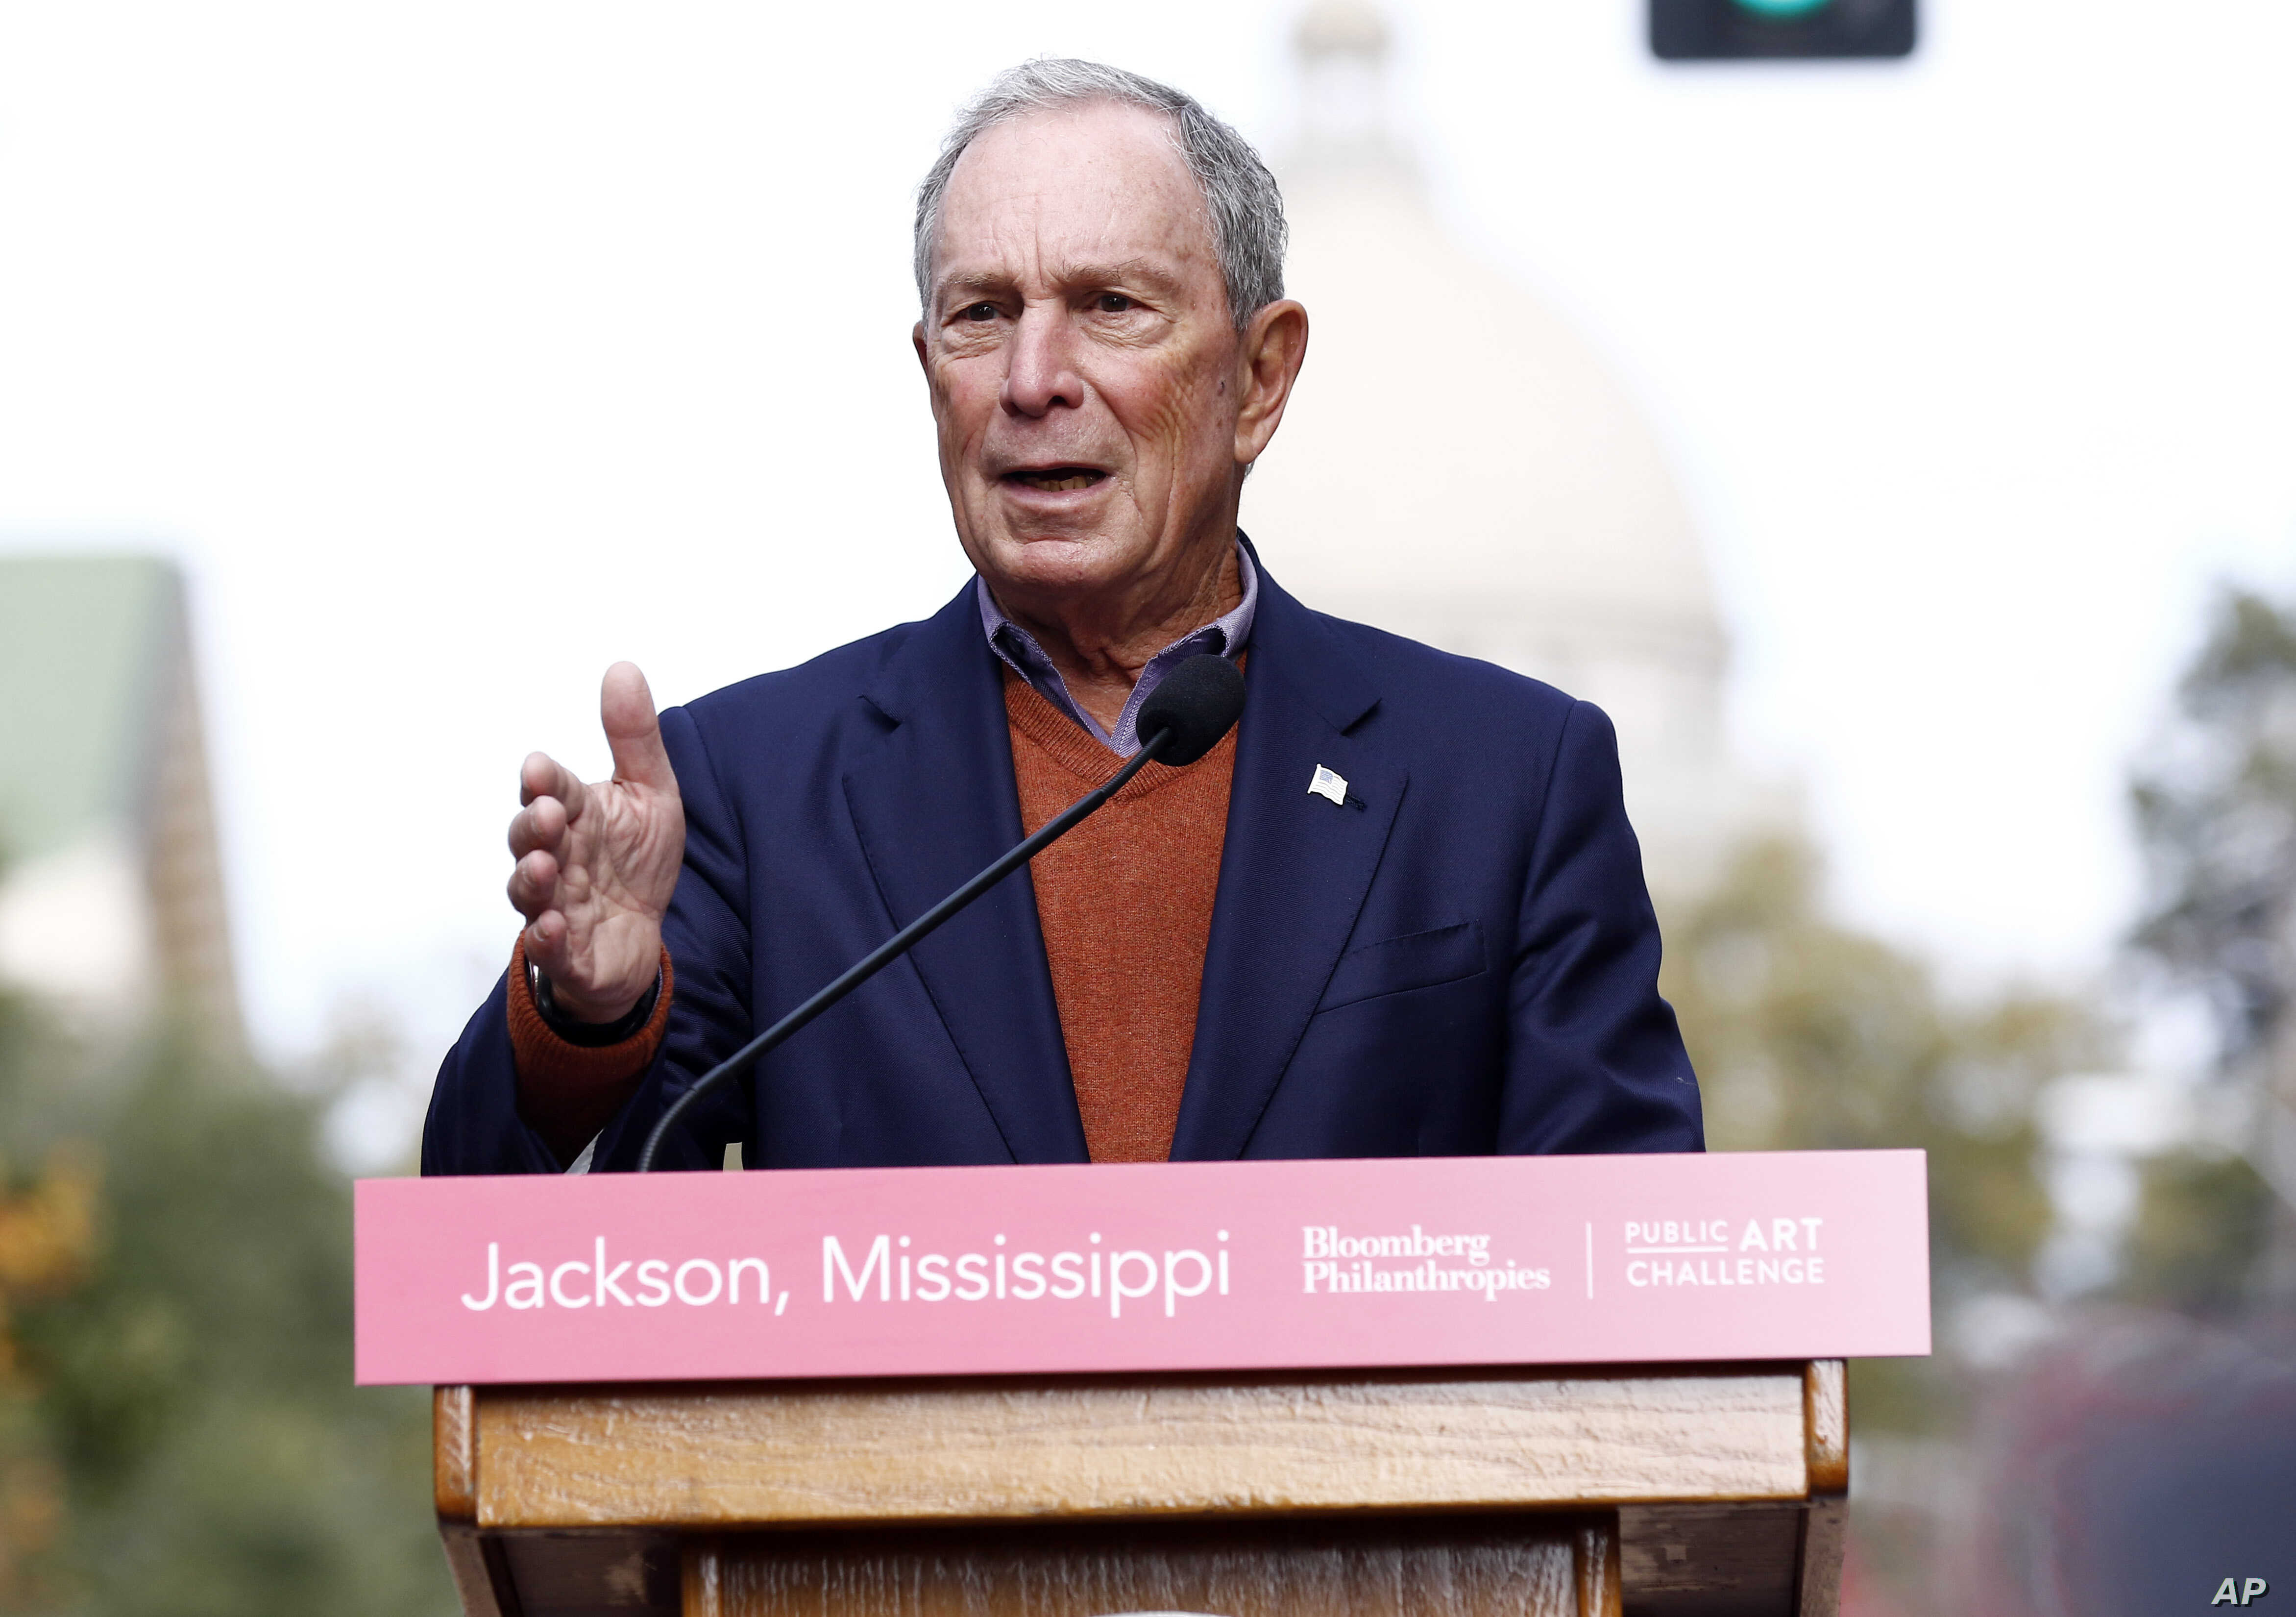 FILE - Former mayor of New York City Michael Bloomberg speaks to the media in Jackson, Miss., Nov. 29, 2018. Bloomberg's philanthropy has announced a $50 million donation to help fight the nation's opioid epidemic.